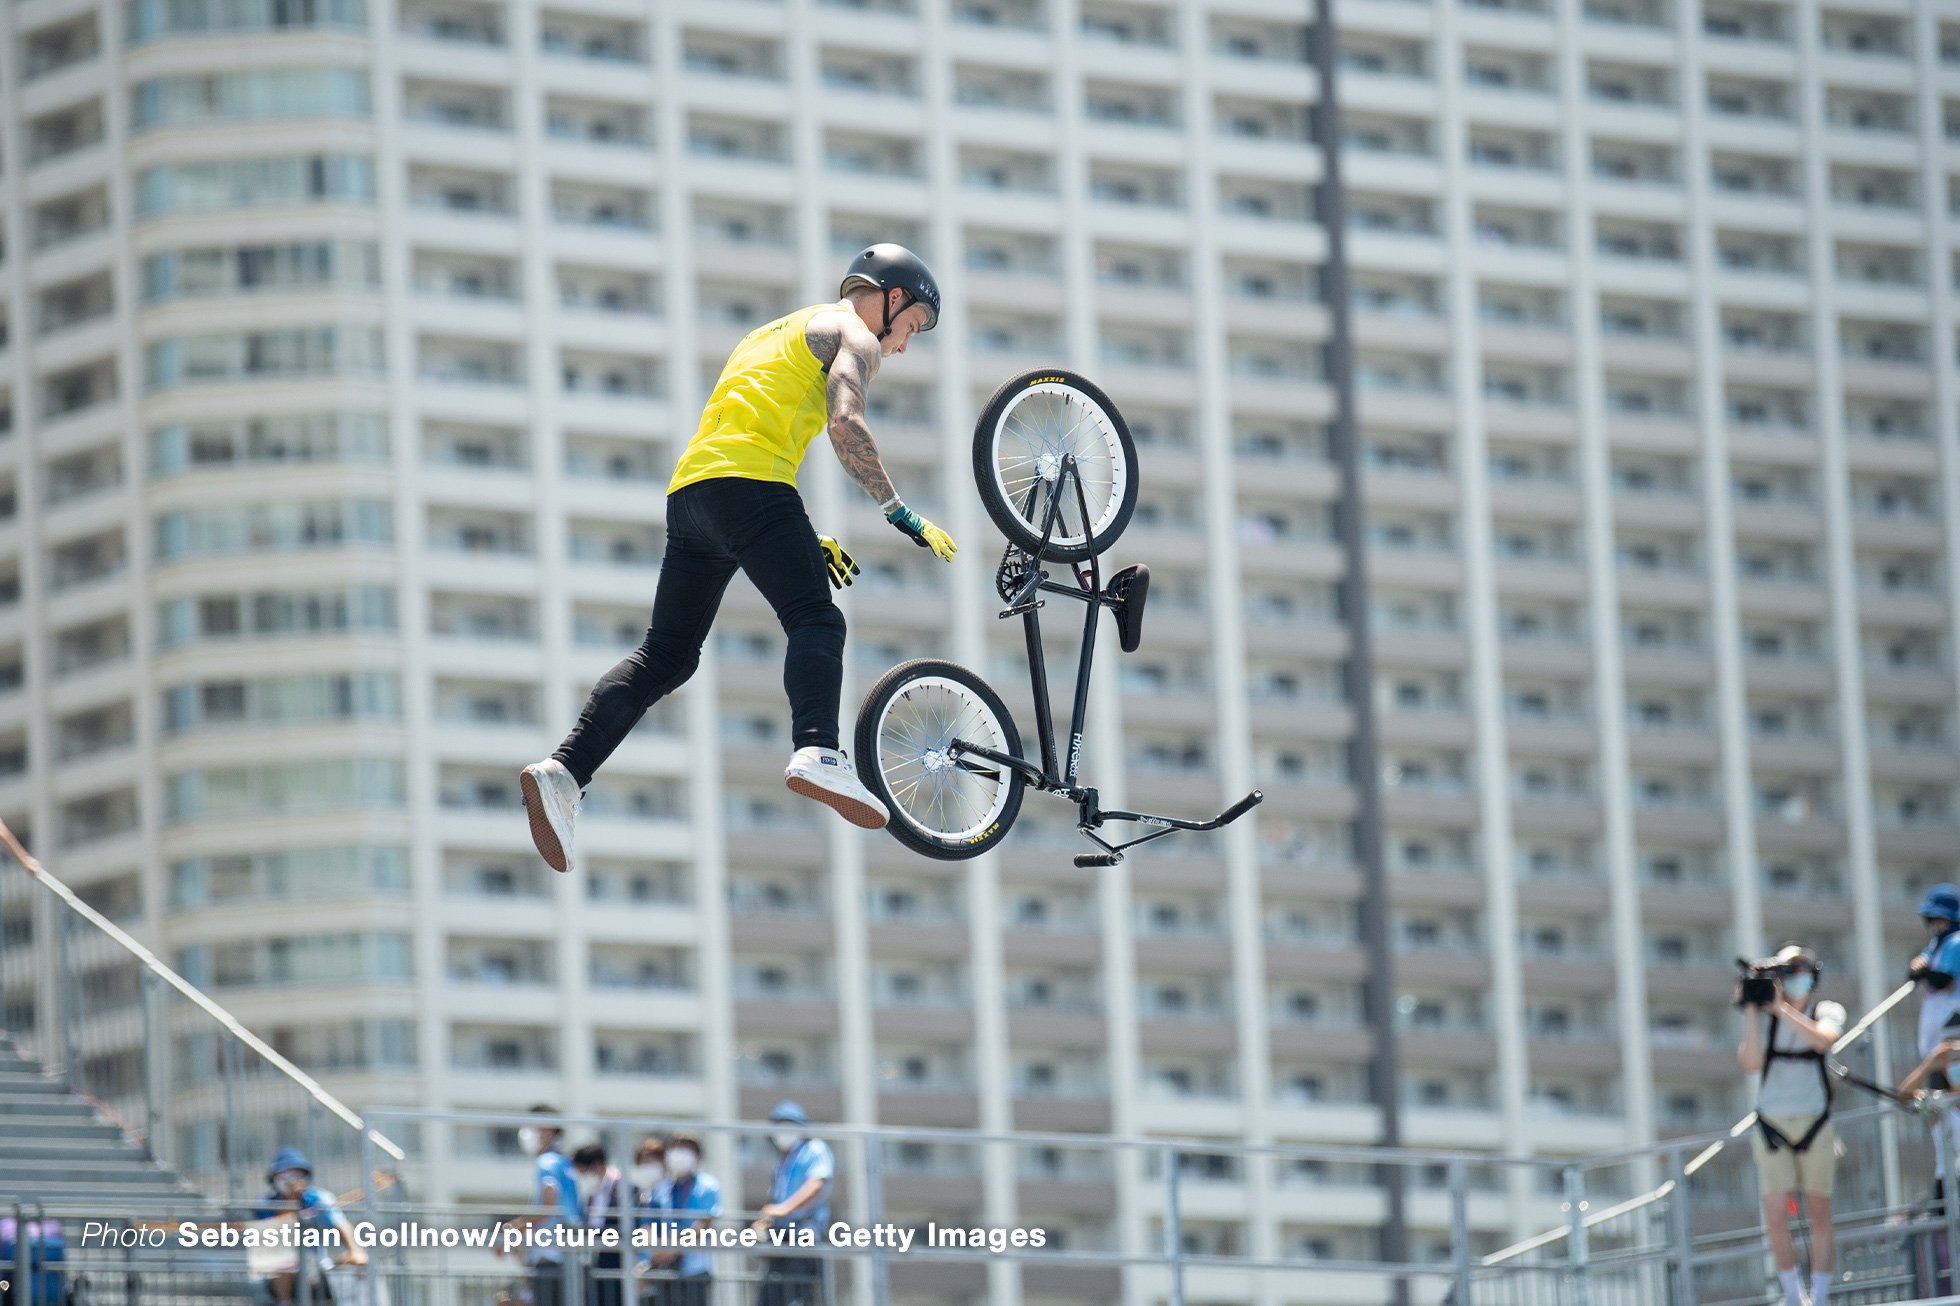 01 August 2021, Japan, Tokio: Cycling/BMX: Olympia: Freestyle, Men, Final: Martin Logan from Australia in action. Photo: Sebastian Gollnow/dpa (Photo by Sebastian Gollnow/picture alliance via Getty Images)